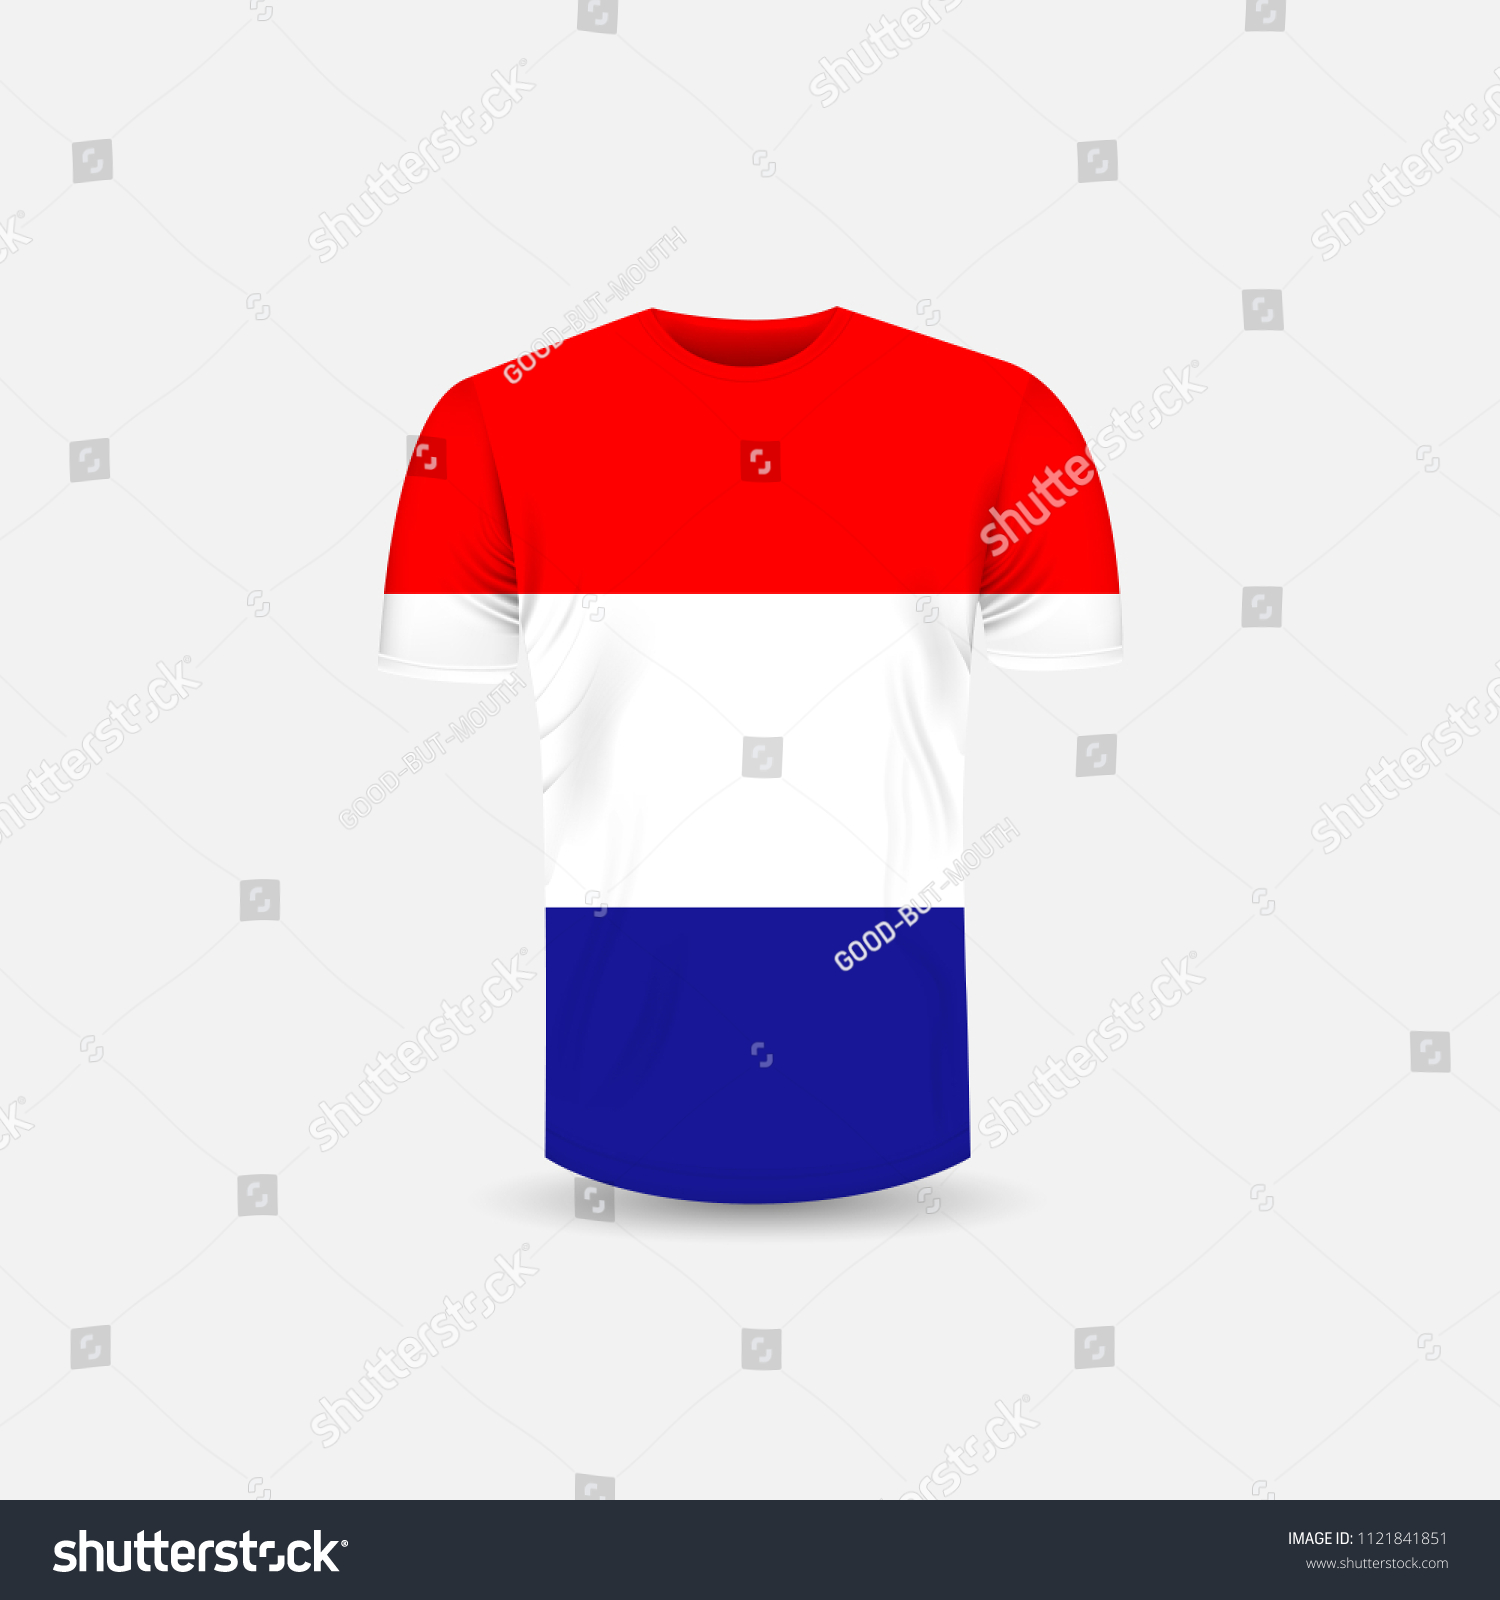 3341ea06e695 Men's T-shirt icon and Croatia flag background.Round neck Jersey  background.Front